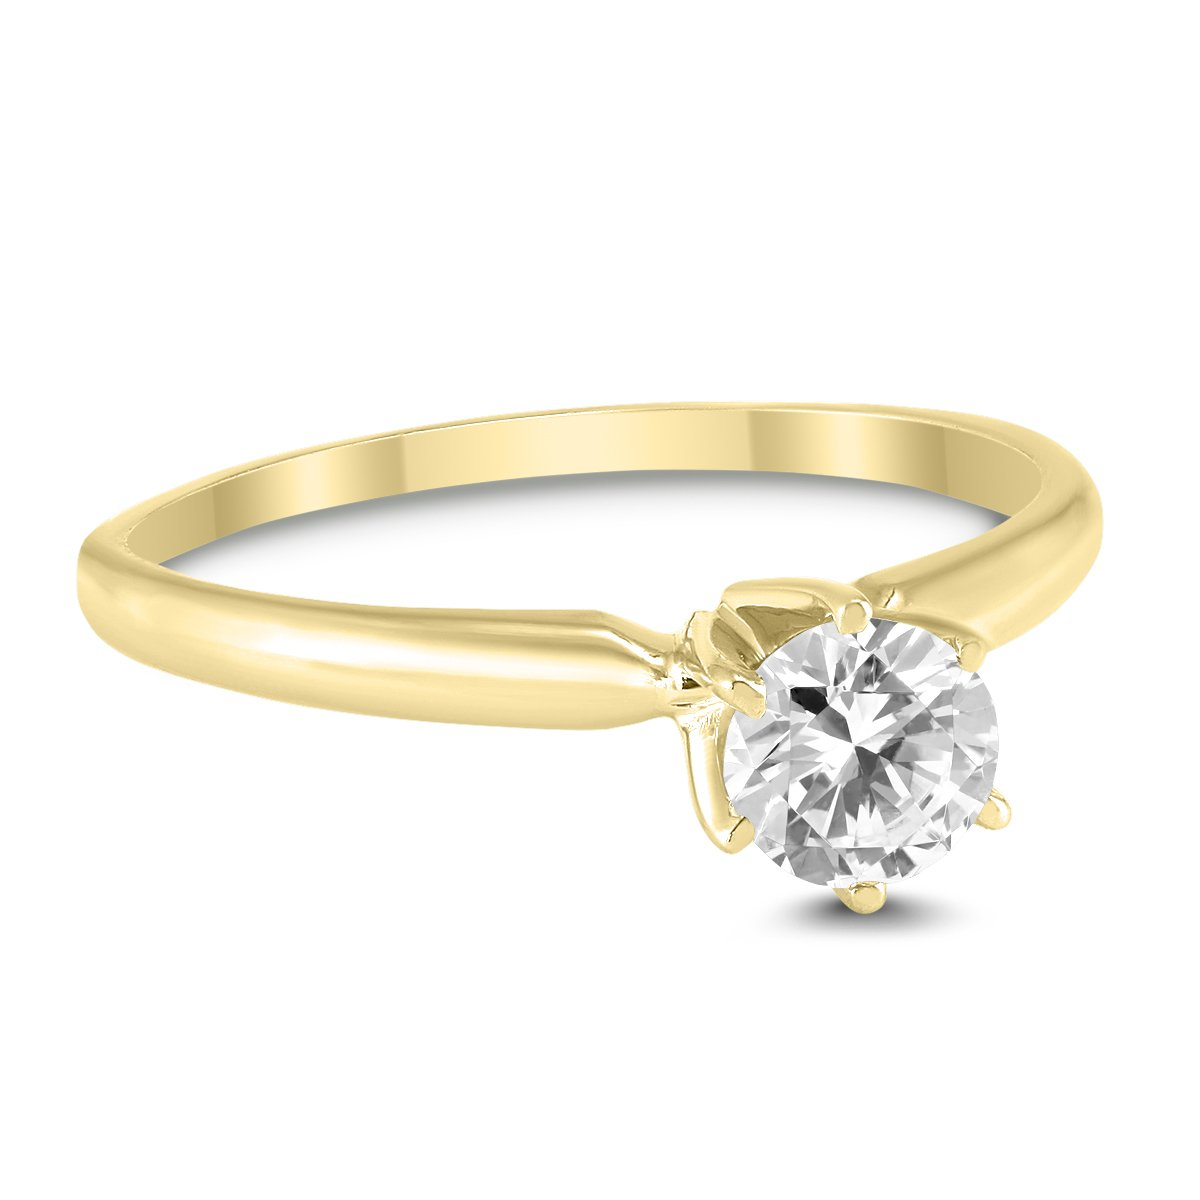 Round Diamond Solitaire Ring in 14K Yellow Gold